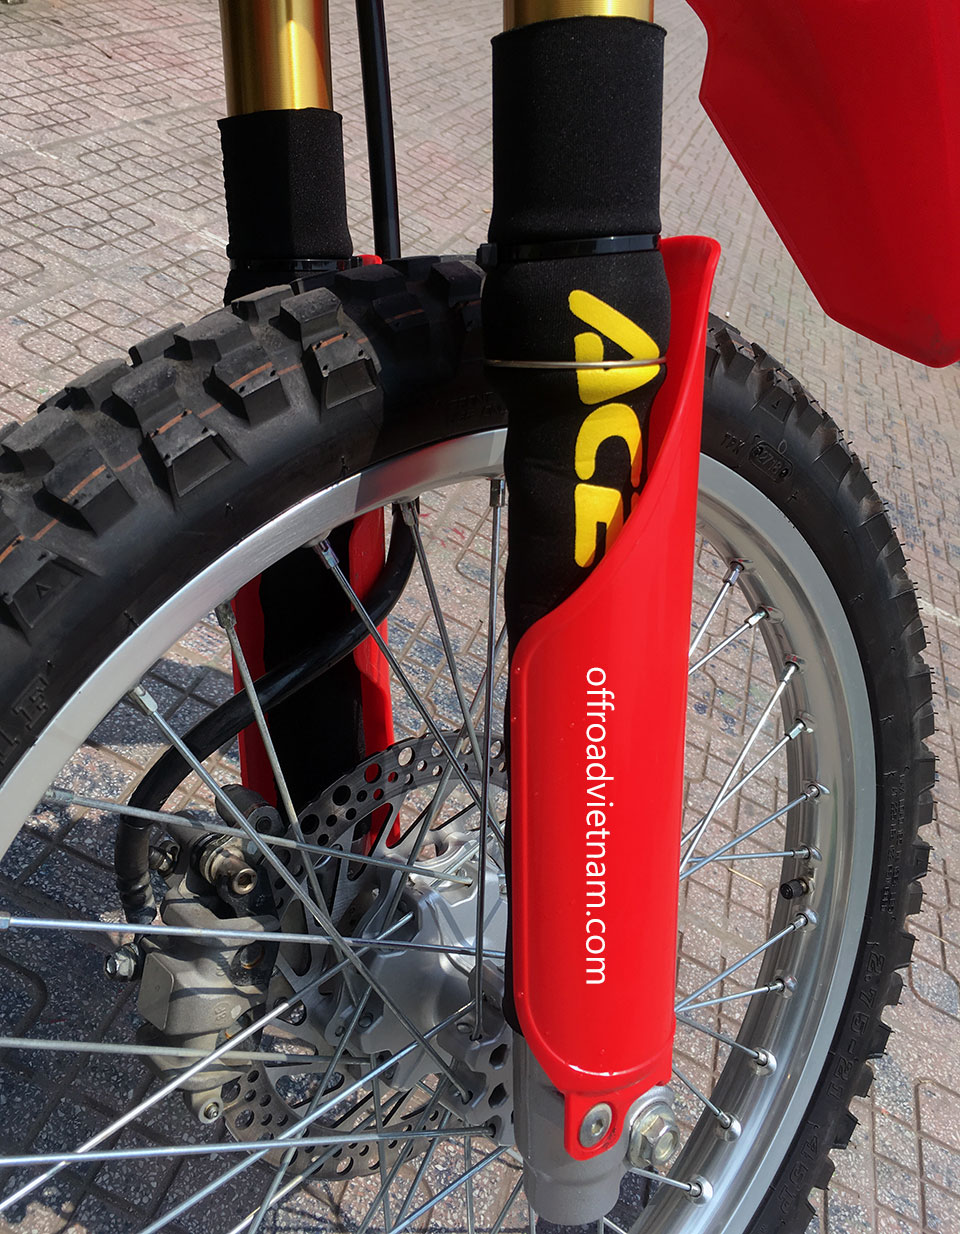 Offroad Vietnam Dirt Bike Rental - Honda CRF150L 150cc In Hanoi. 2019 Honda dirt (trail) bike Honda CRF150L 150cc Red color with front suspension protection